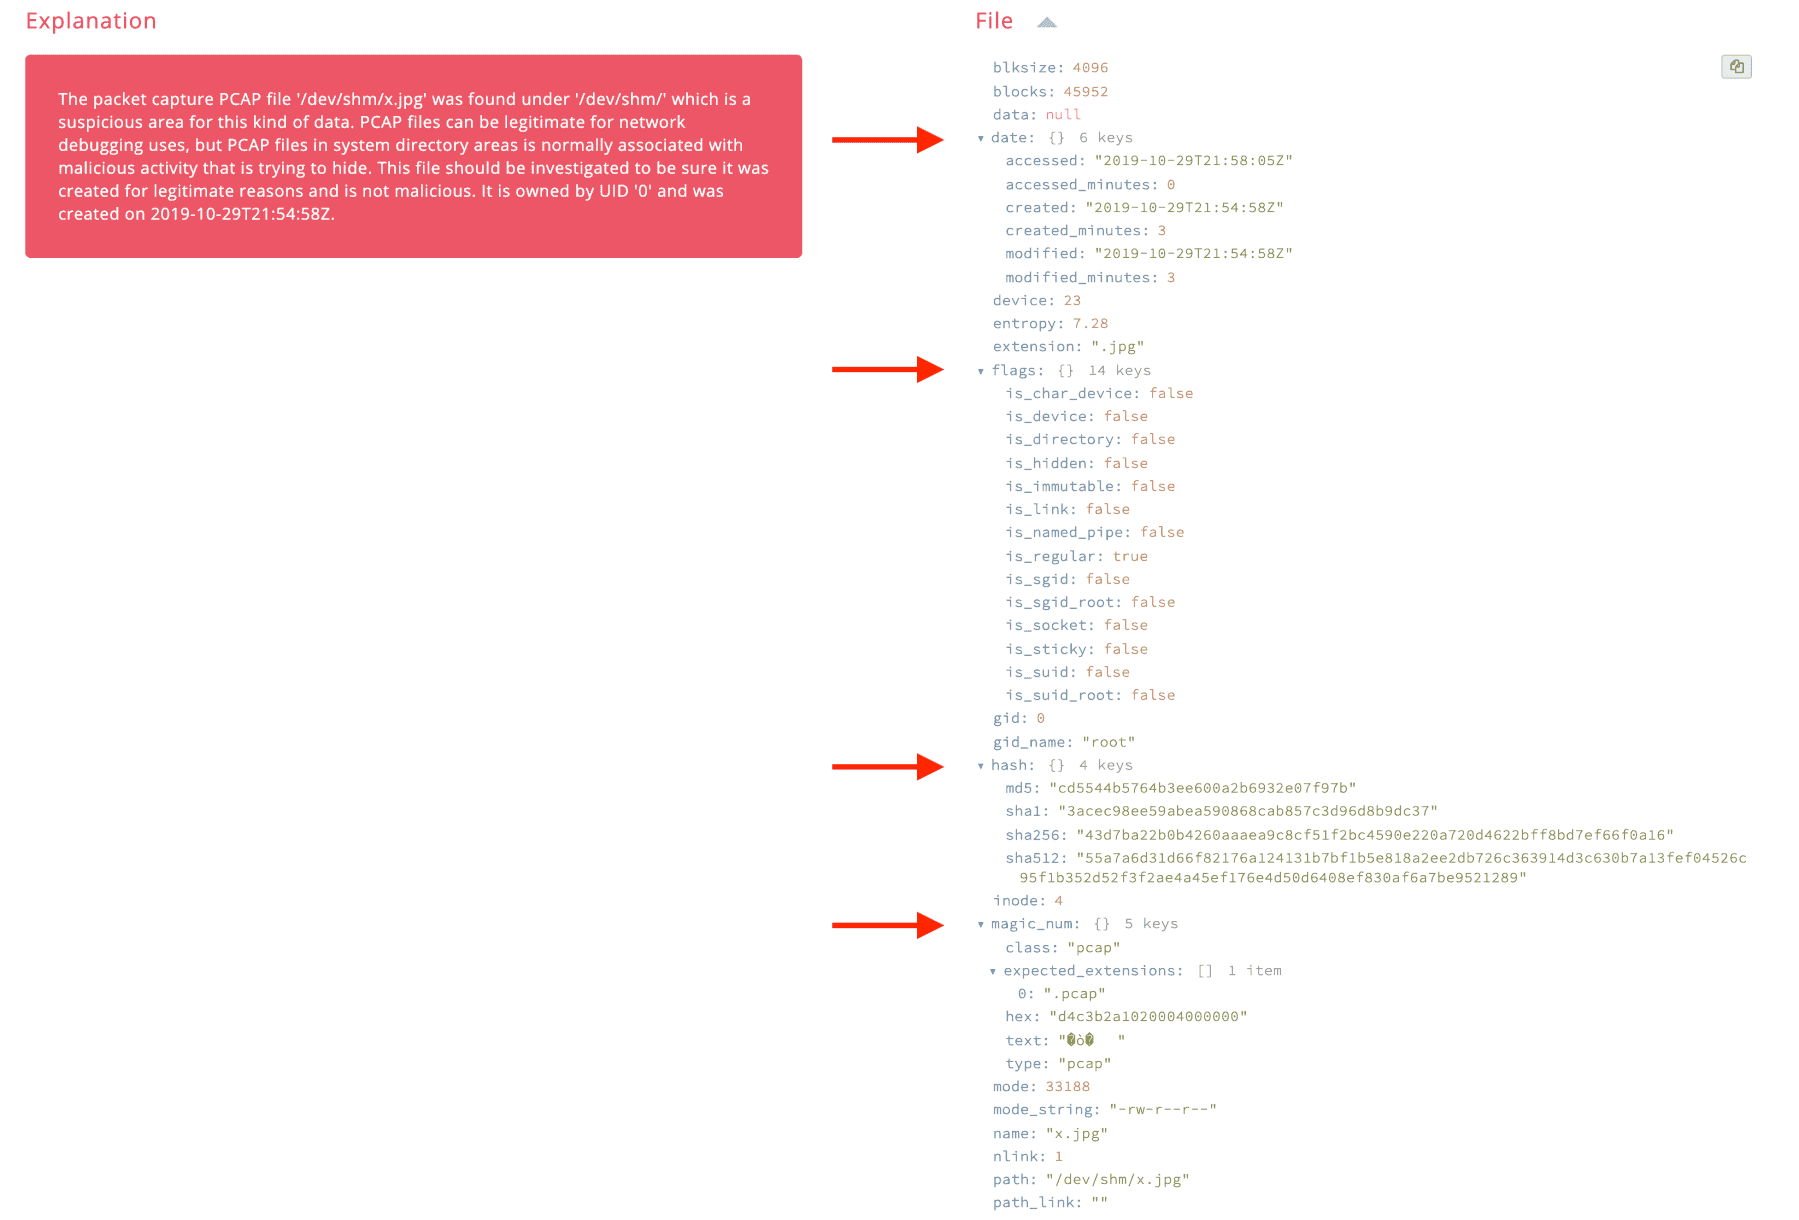 New JSON format example